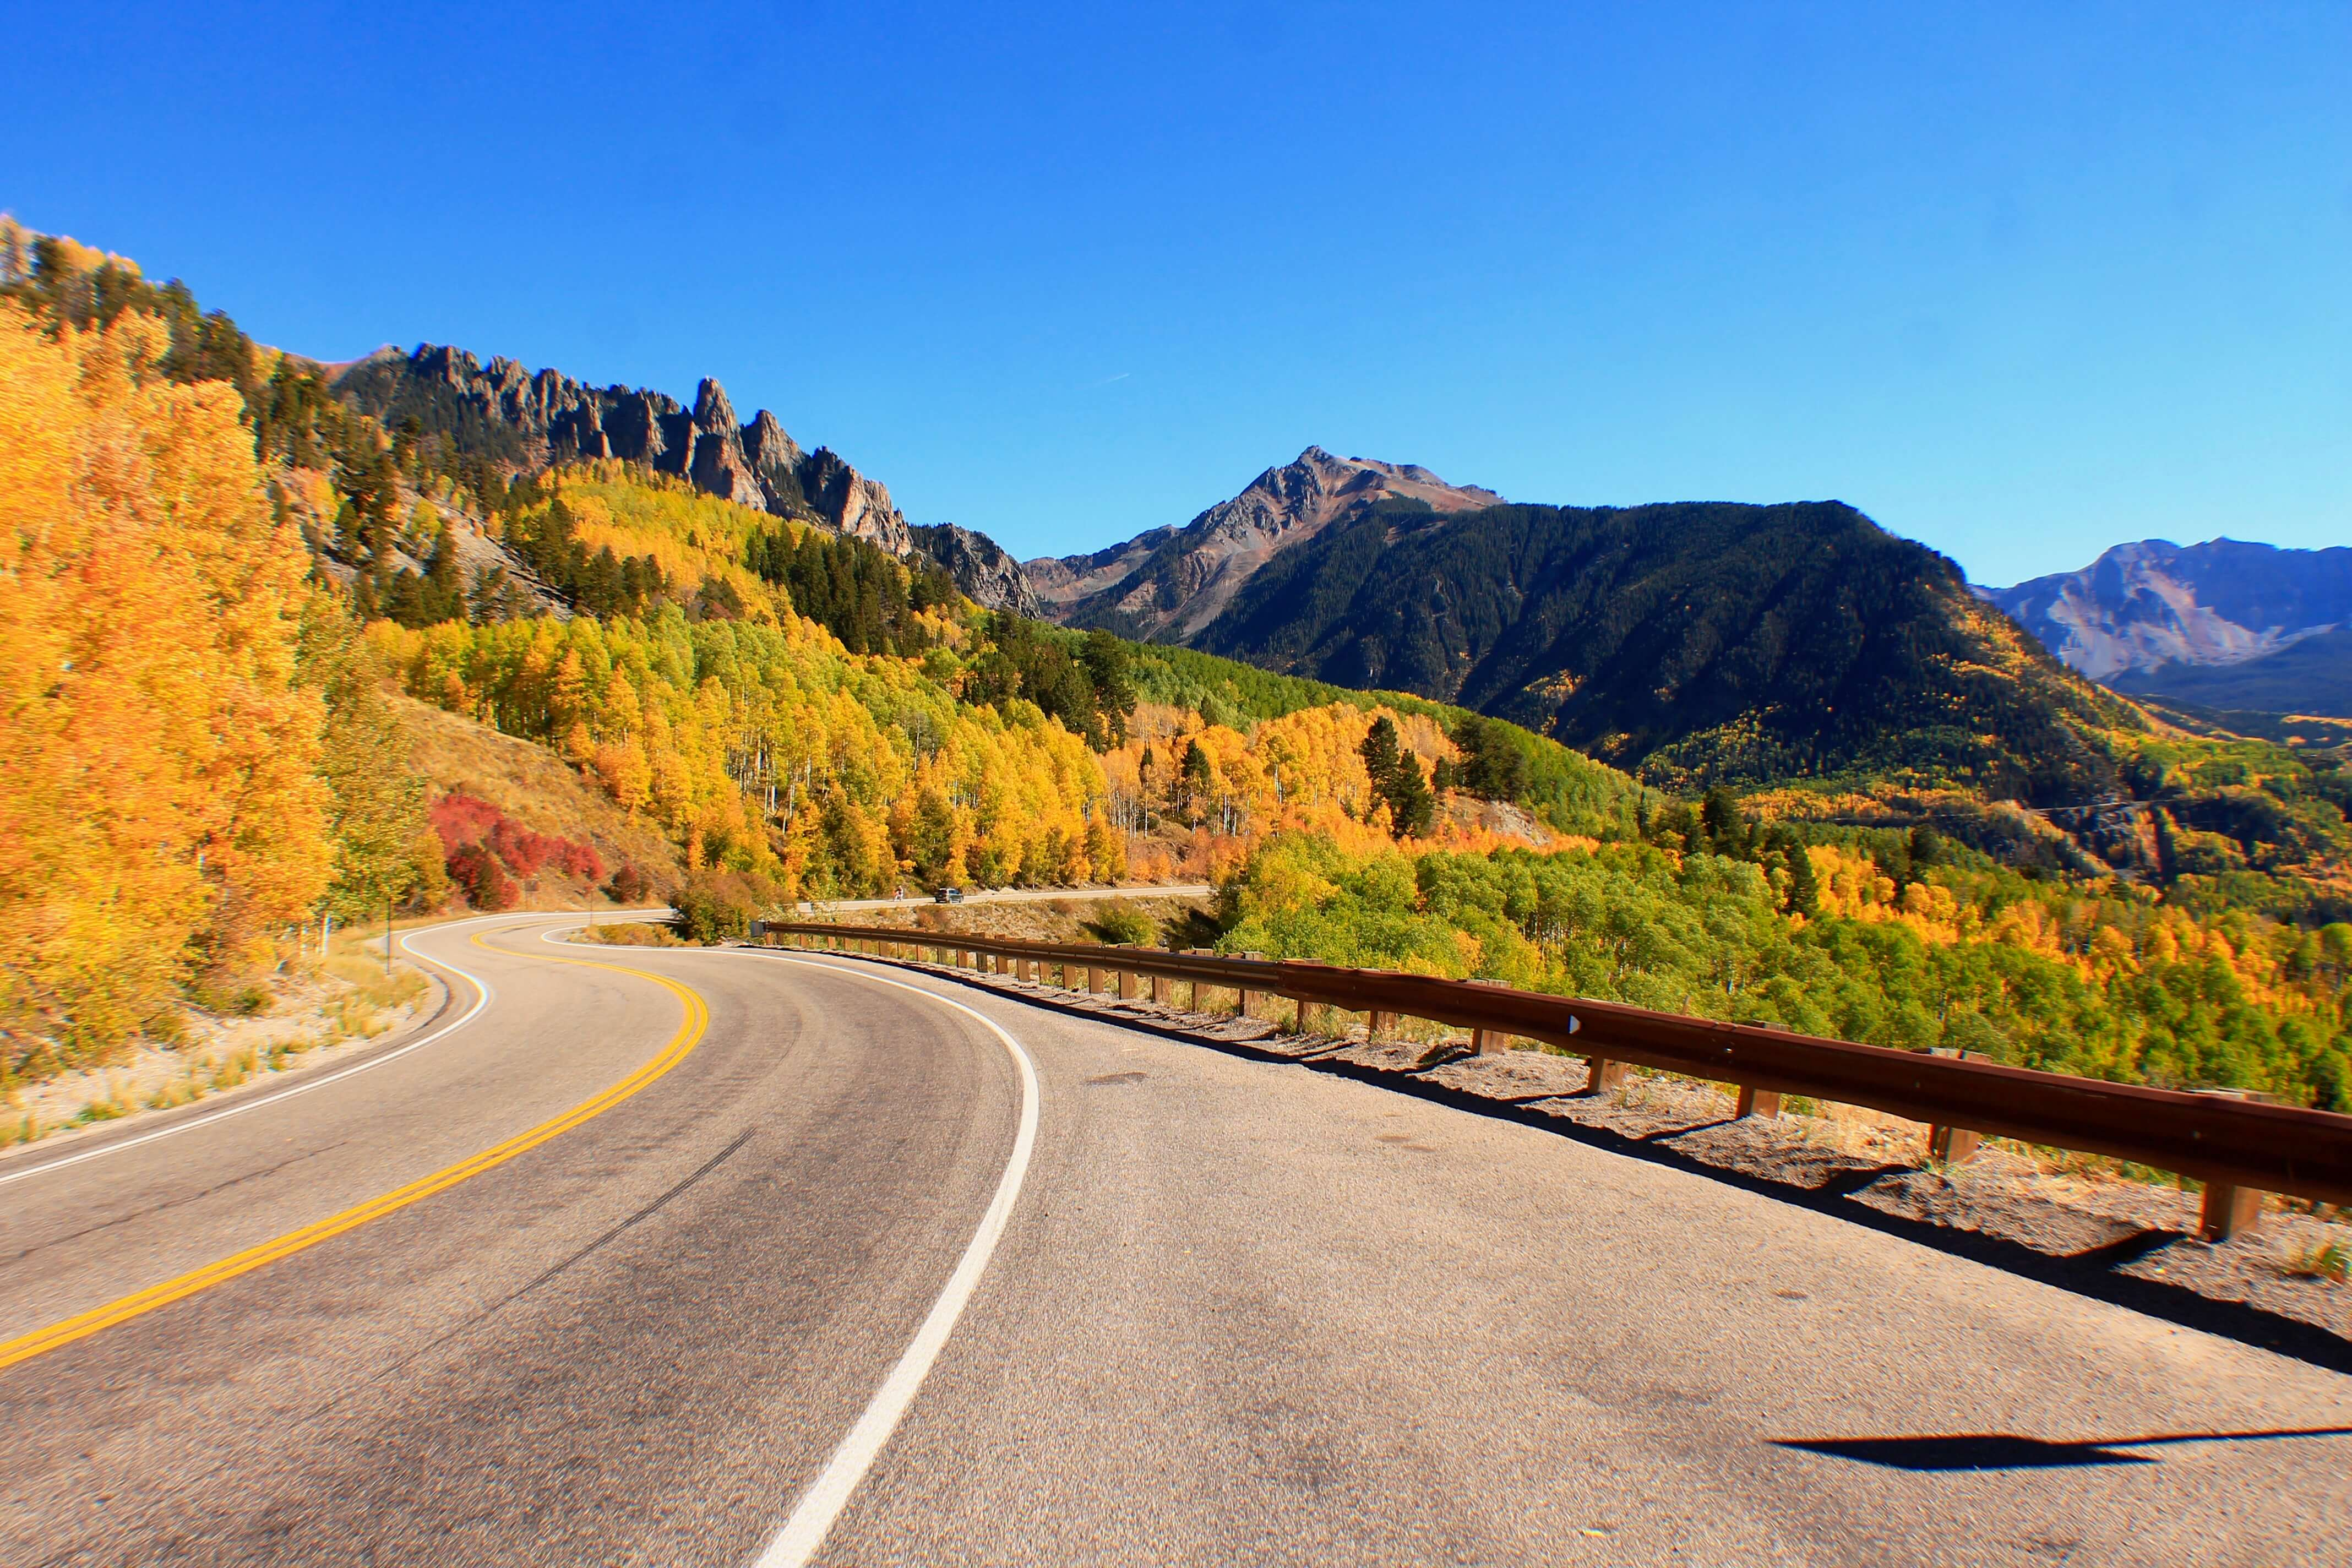 Drive a pass, things to do in Telluride in October